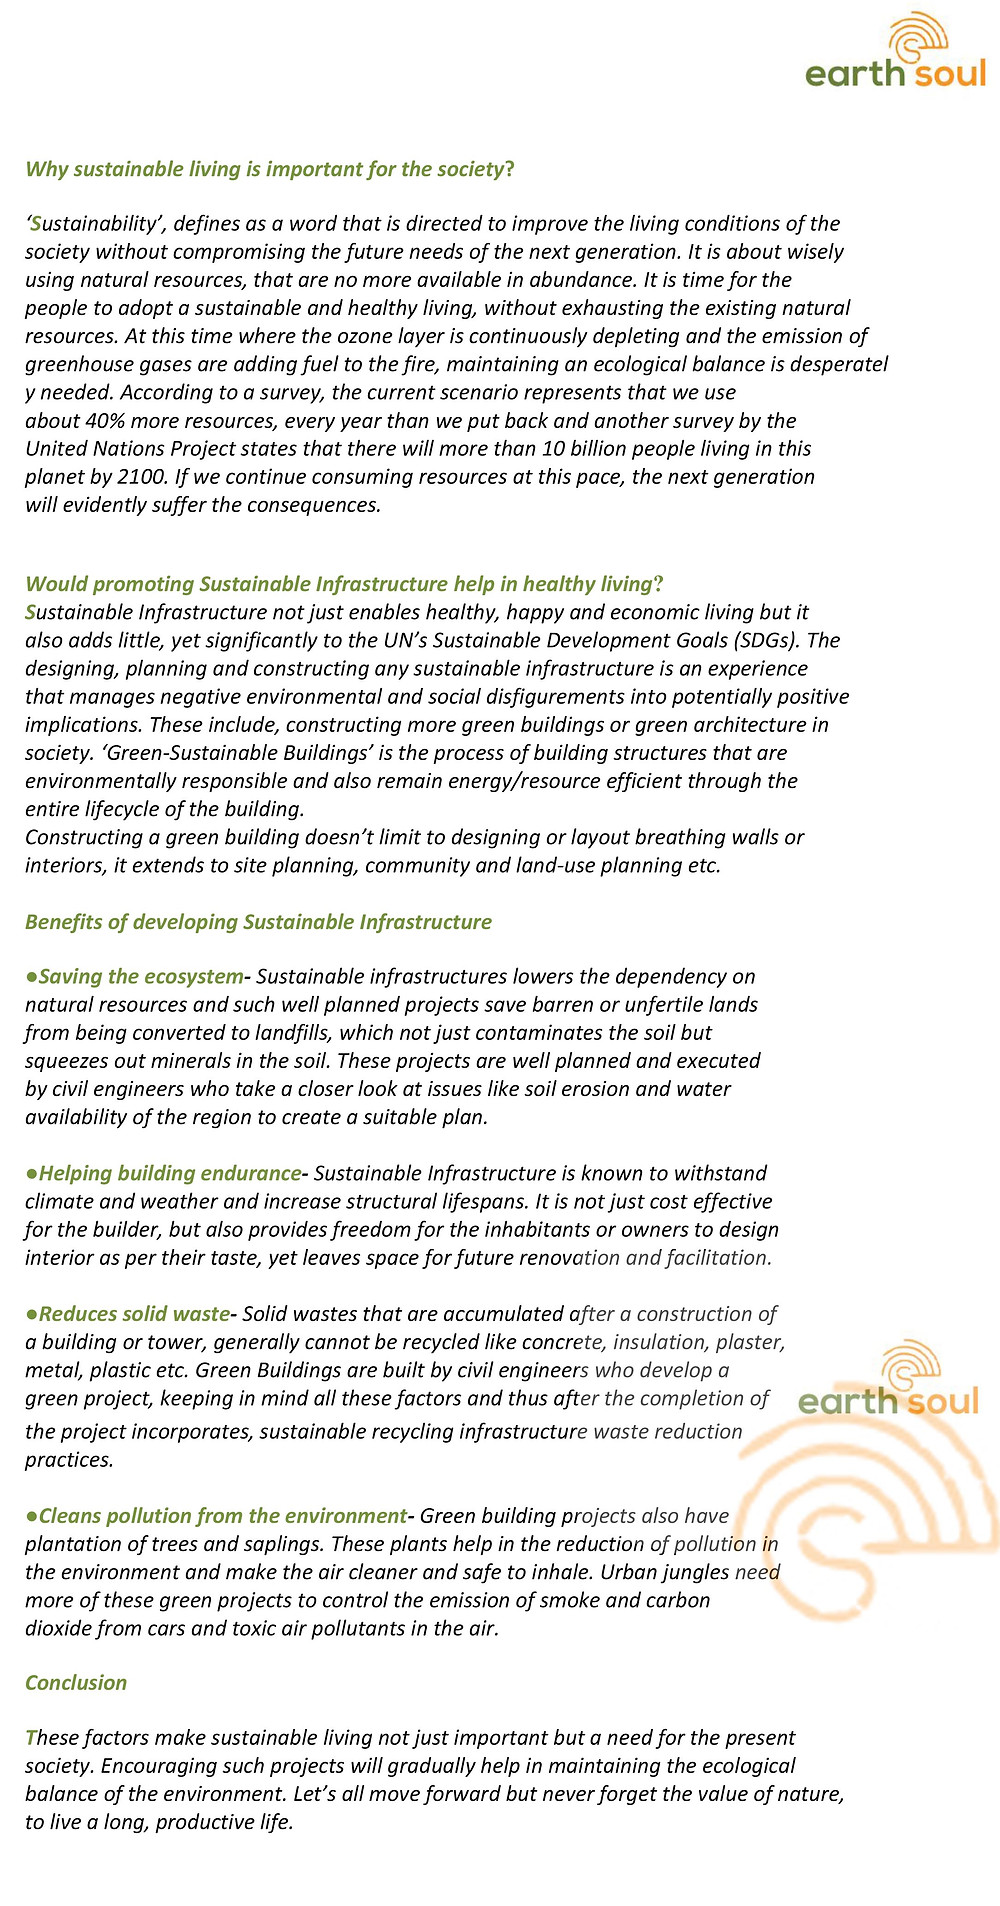 Importance and Benefits of Sustainable infrastructure